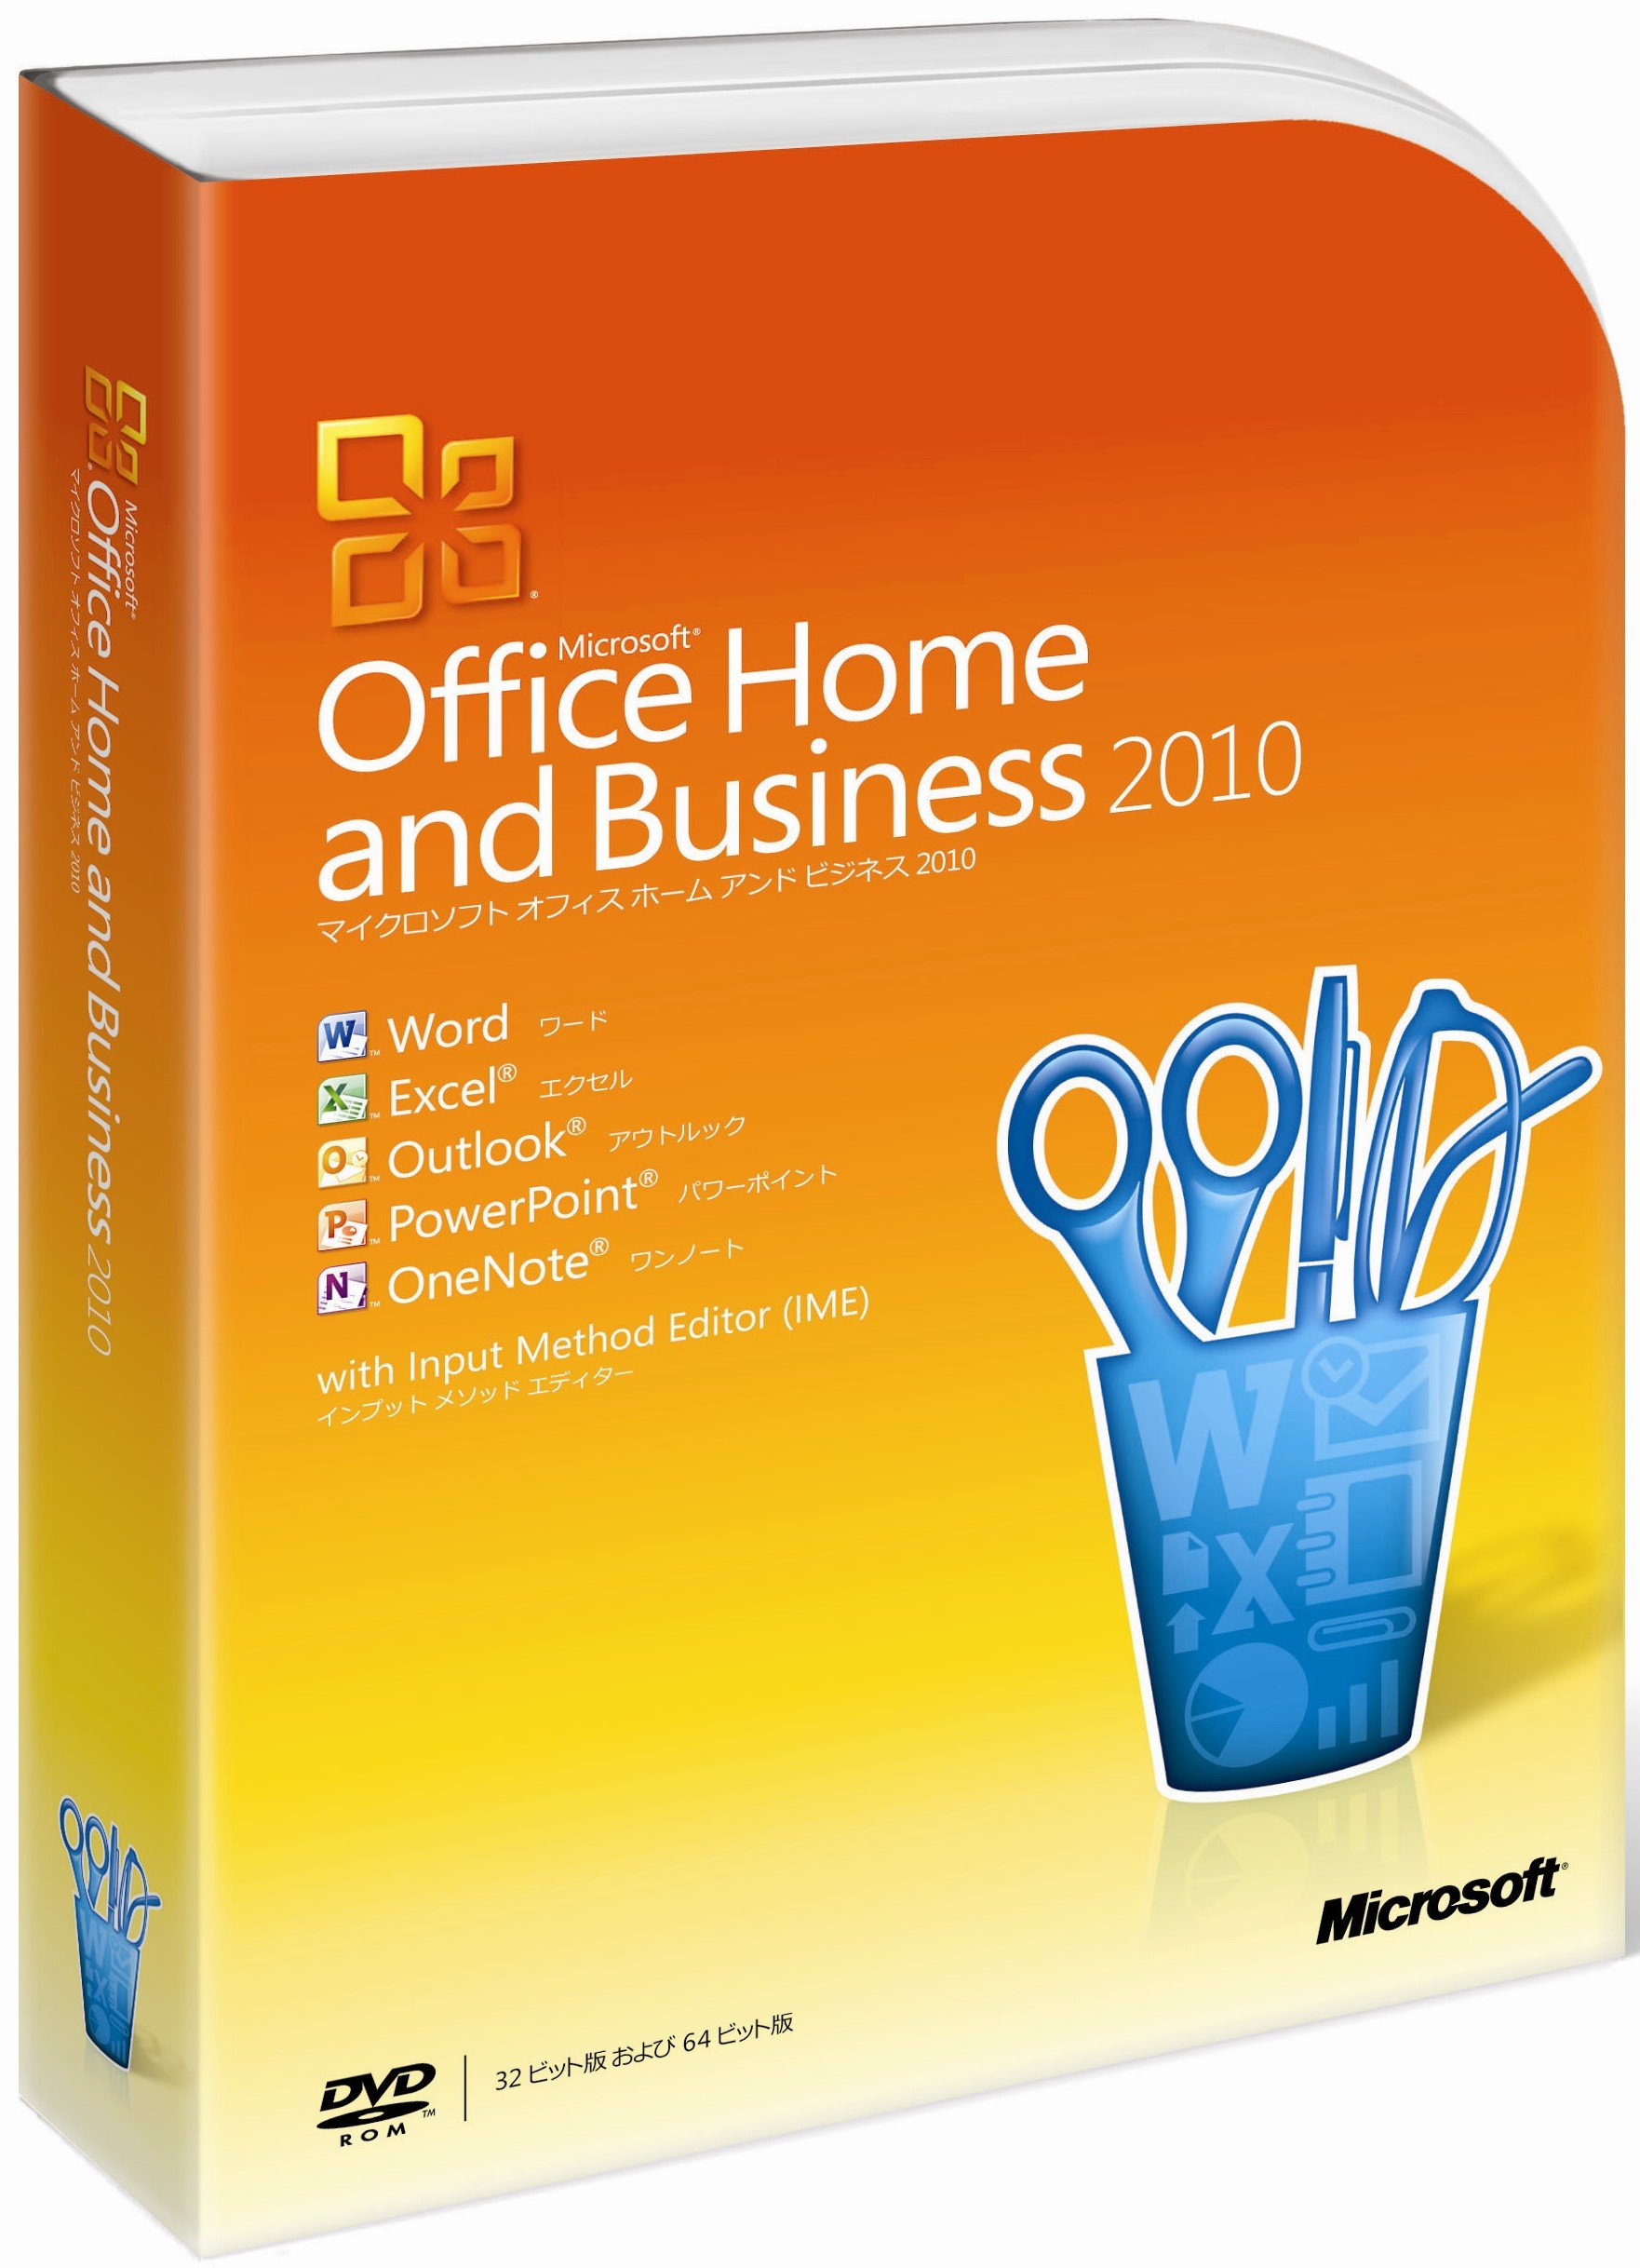 【75%OFF】Office Home and Business 2010